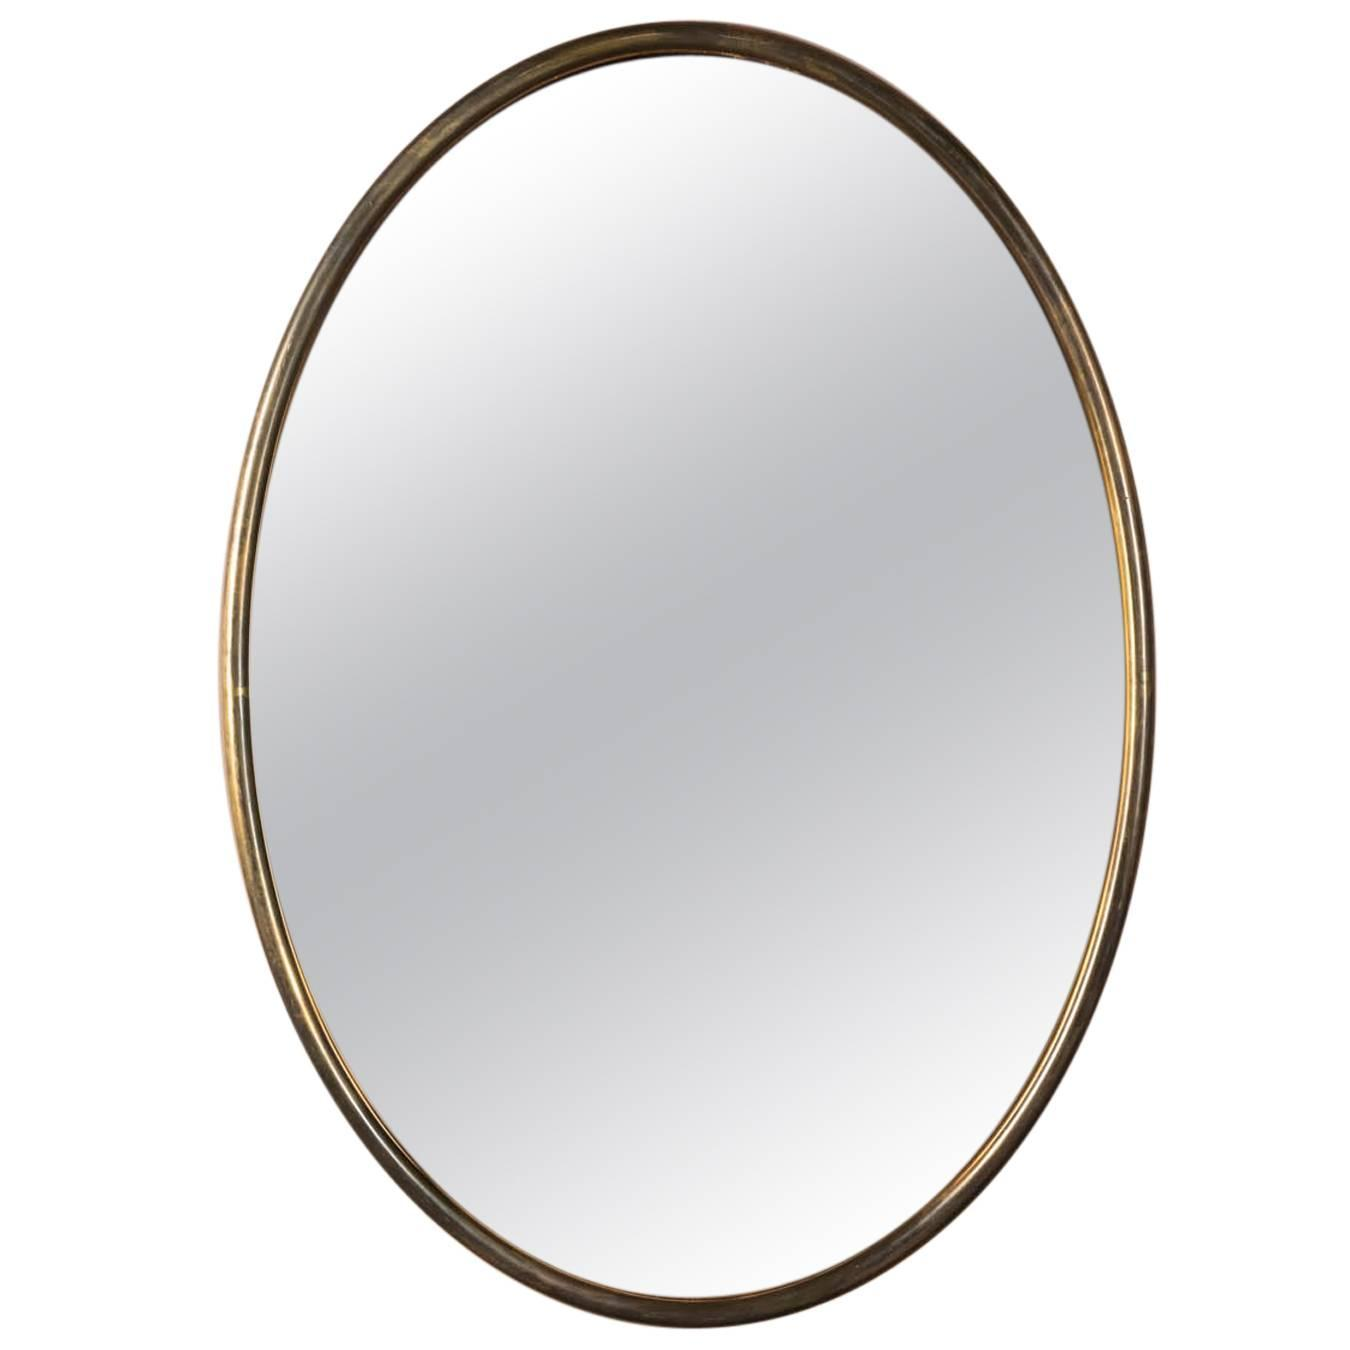 Italian oval brass mirror with copper tinted glass at 1stdibs for Miroir ou mirroir